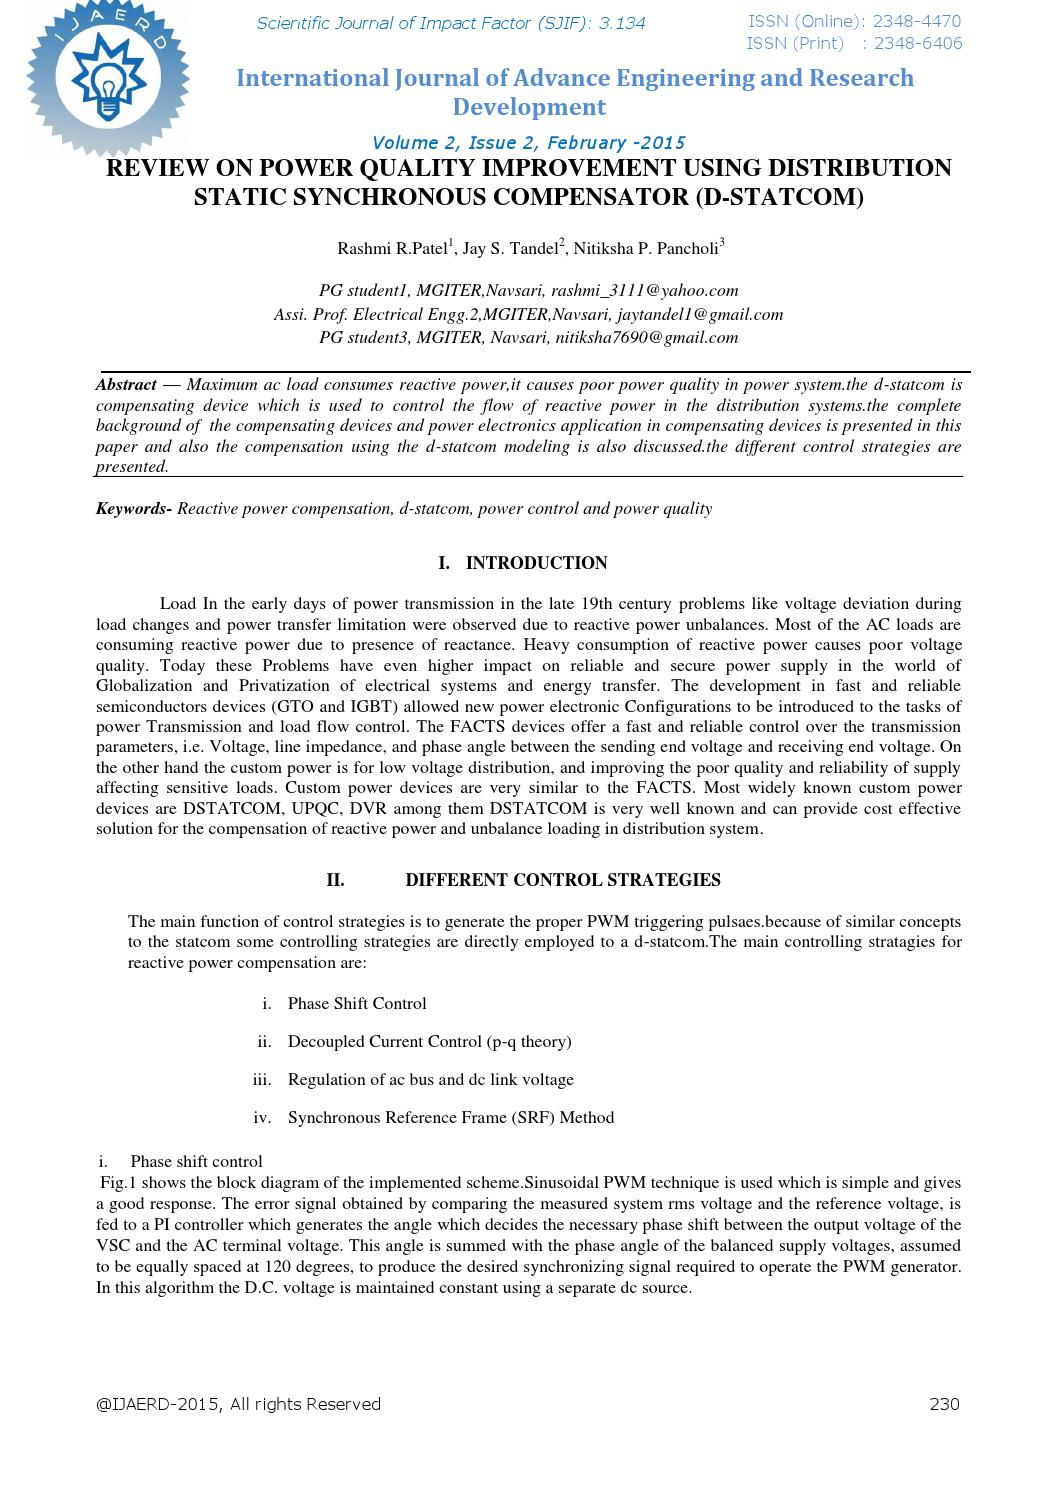 hight resolution of review on power quality improvement using distribution static synchronous compensator d statcom 16 by editor ijaerd issuu